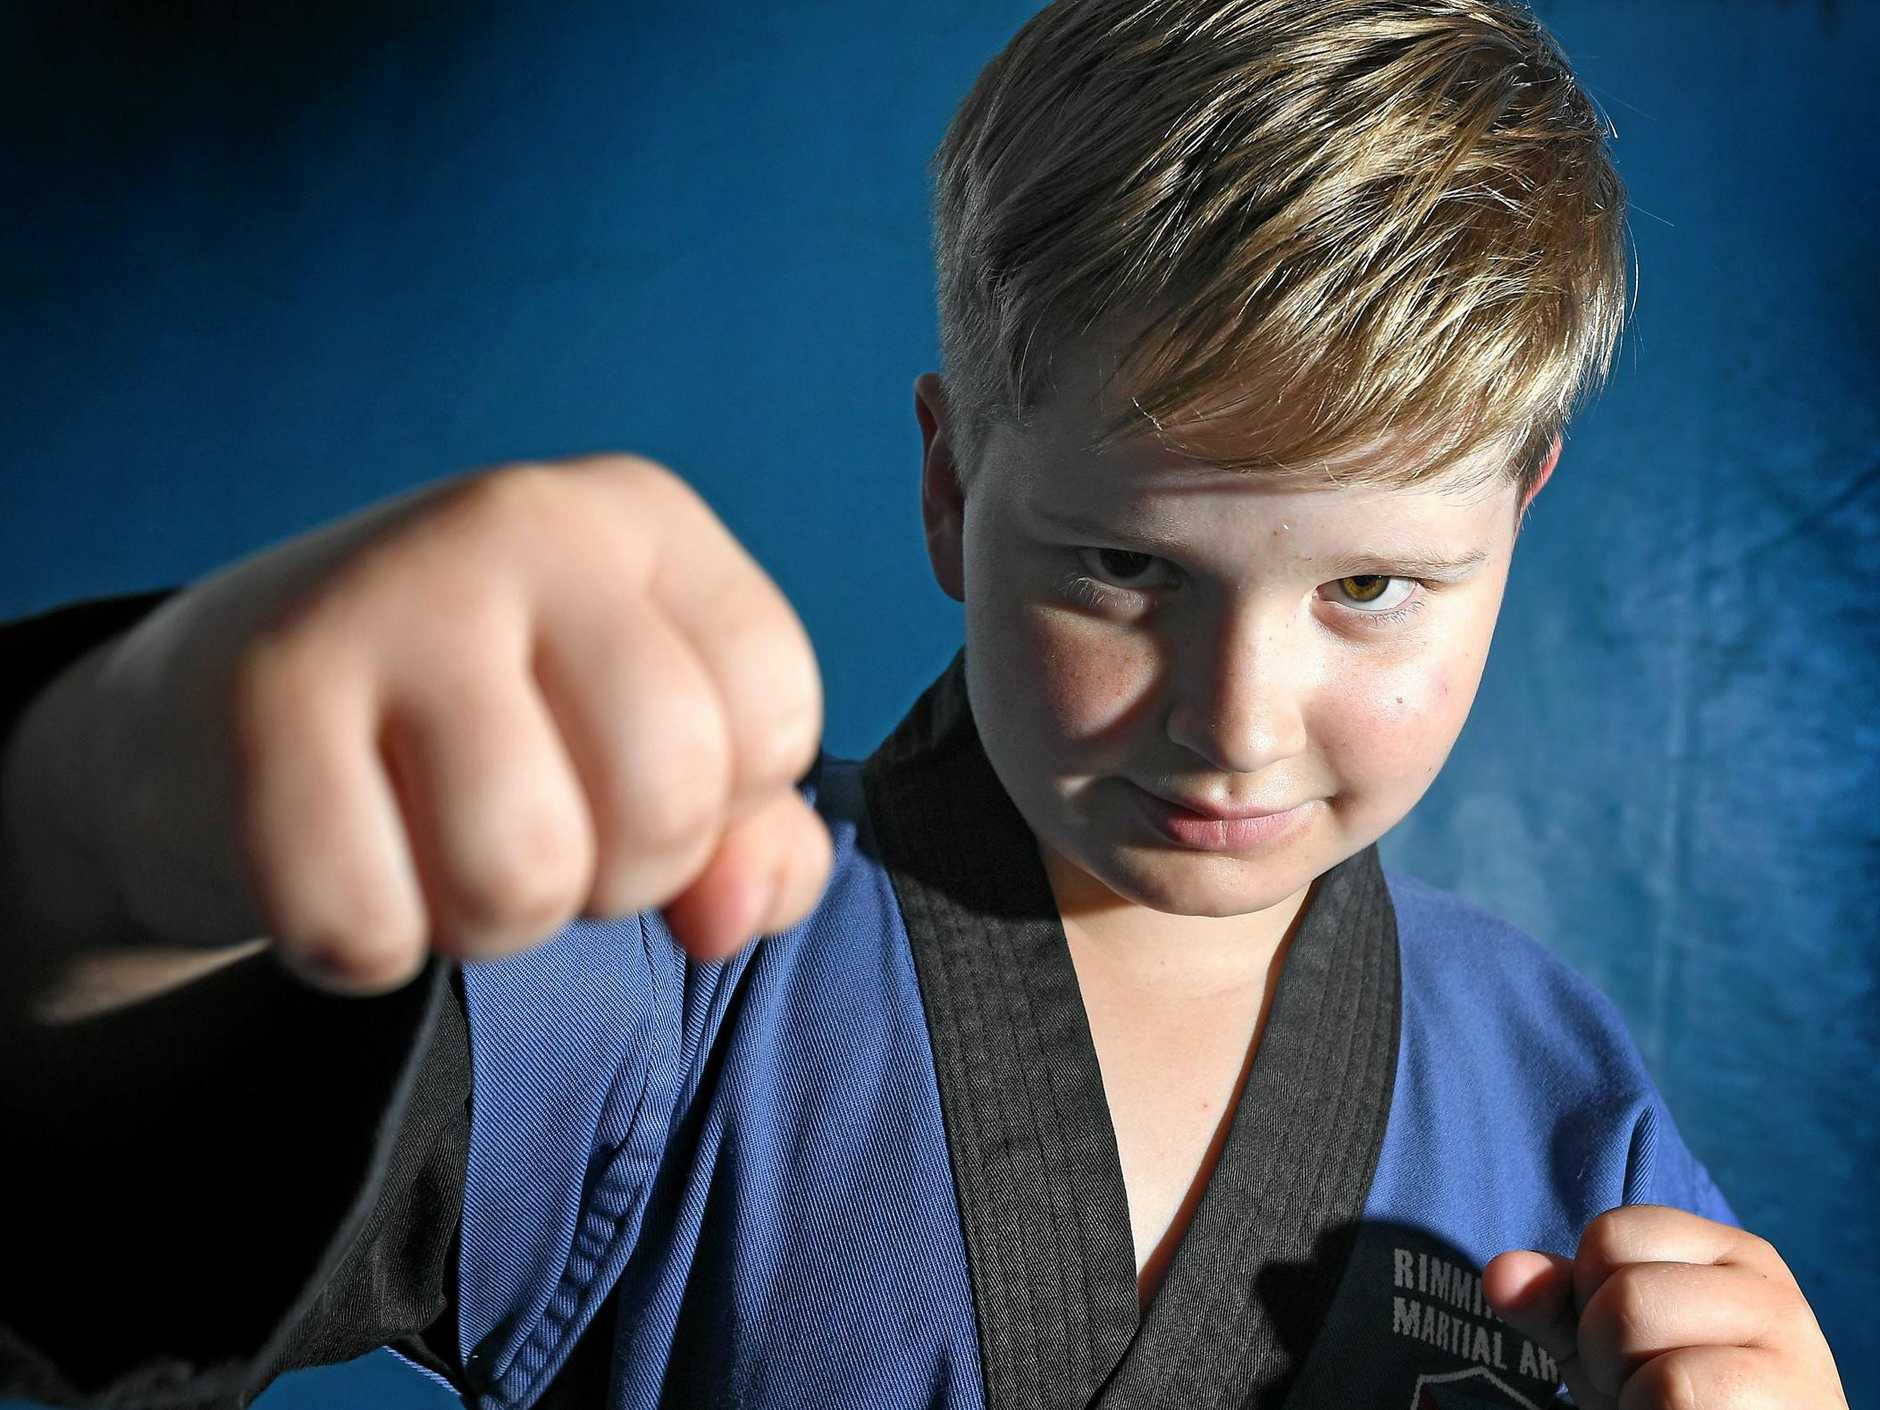 KARATE KID: Gympie's Riley Merrell is now a dual world champion after his wins at the International Sport Karate Association World Cup in Sydney in October.